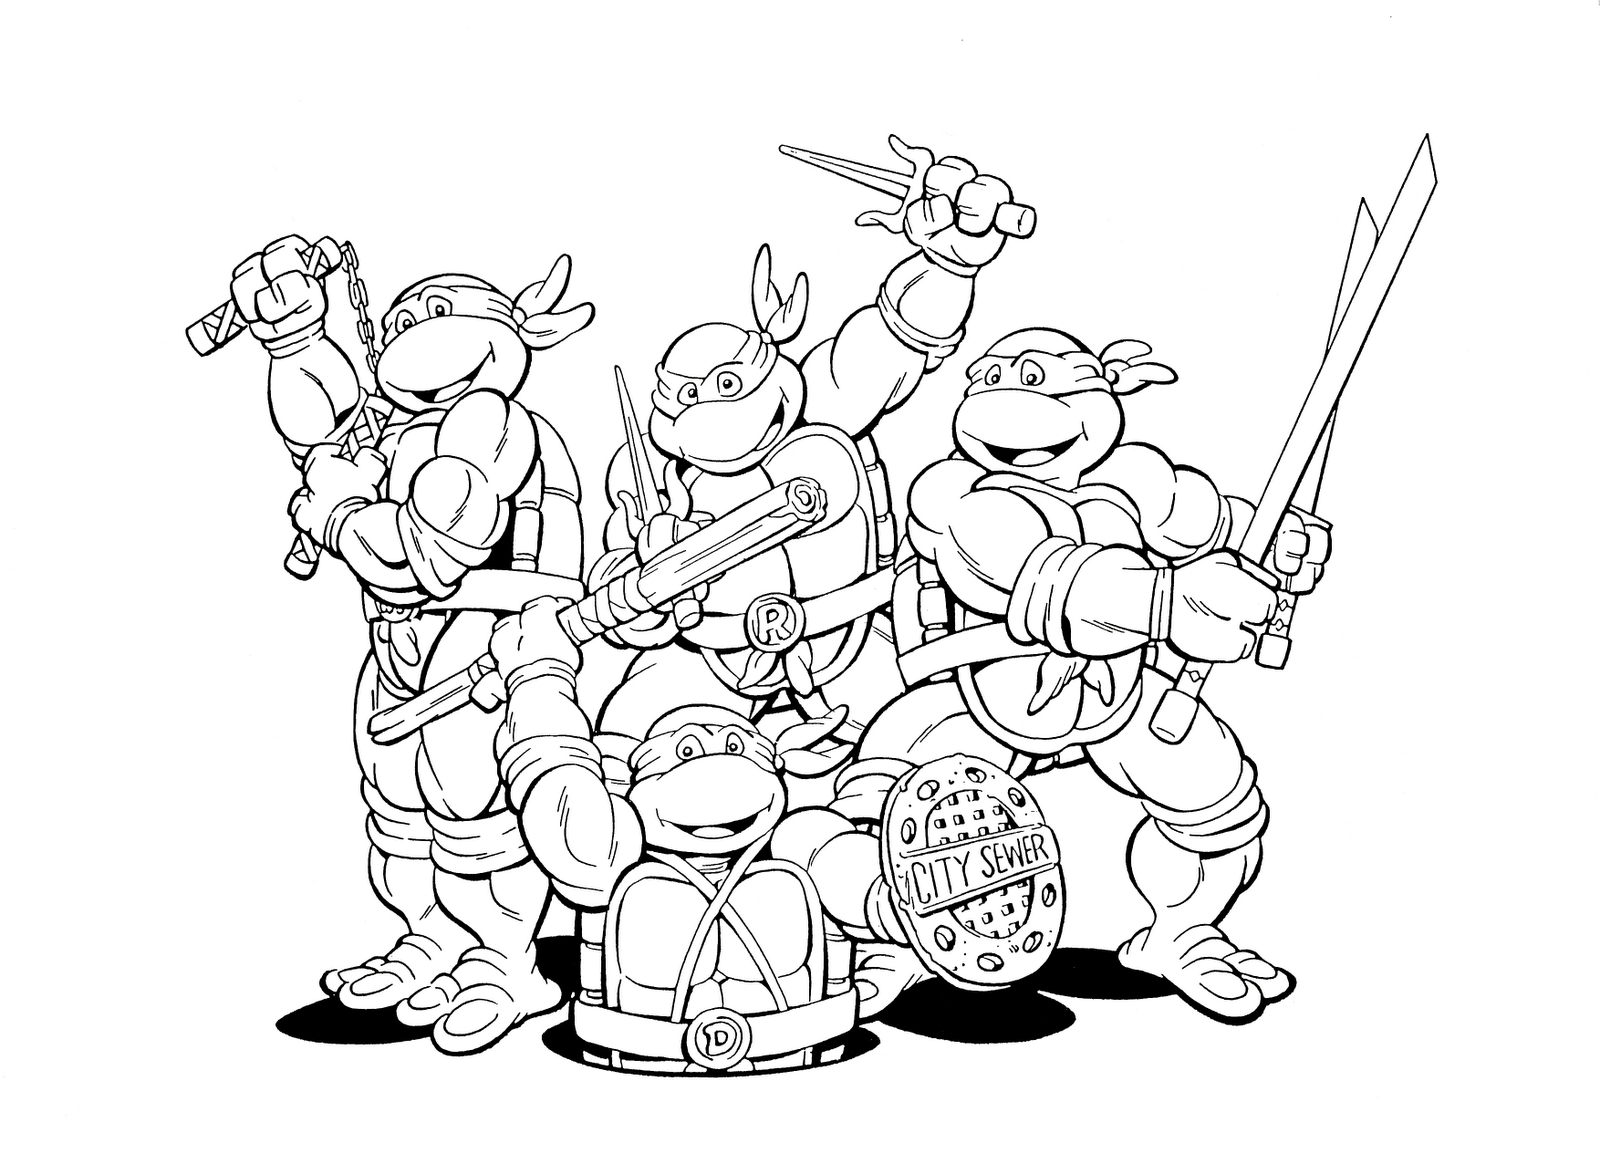 Teenage Ninja Turtle Coloring Pages Download 14c - Free For kids